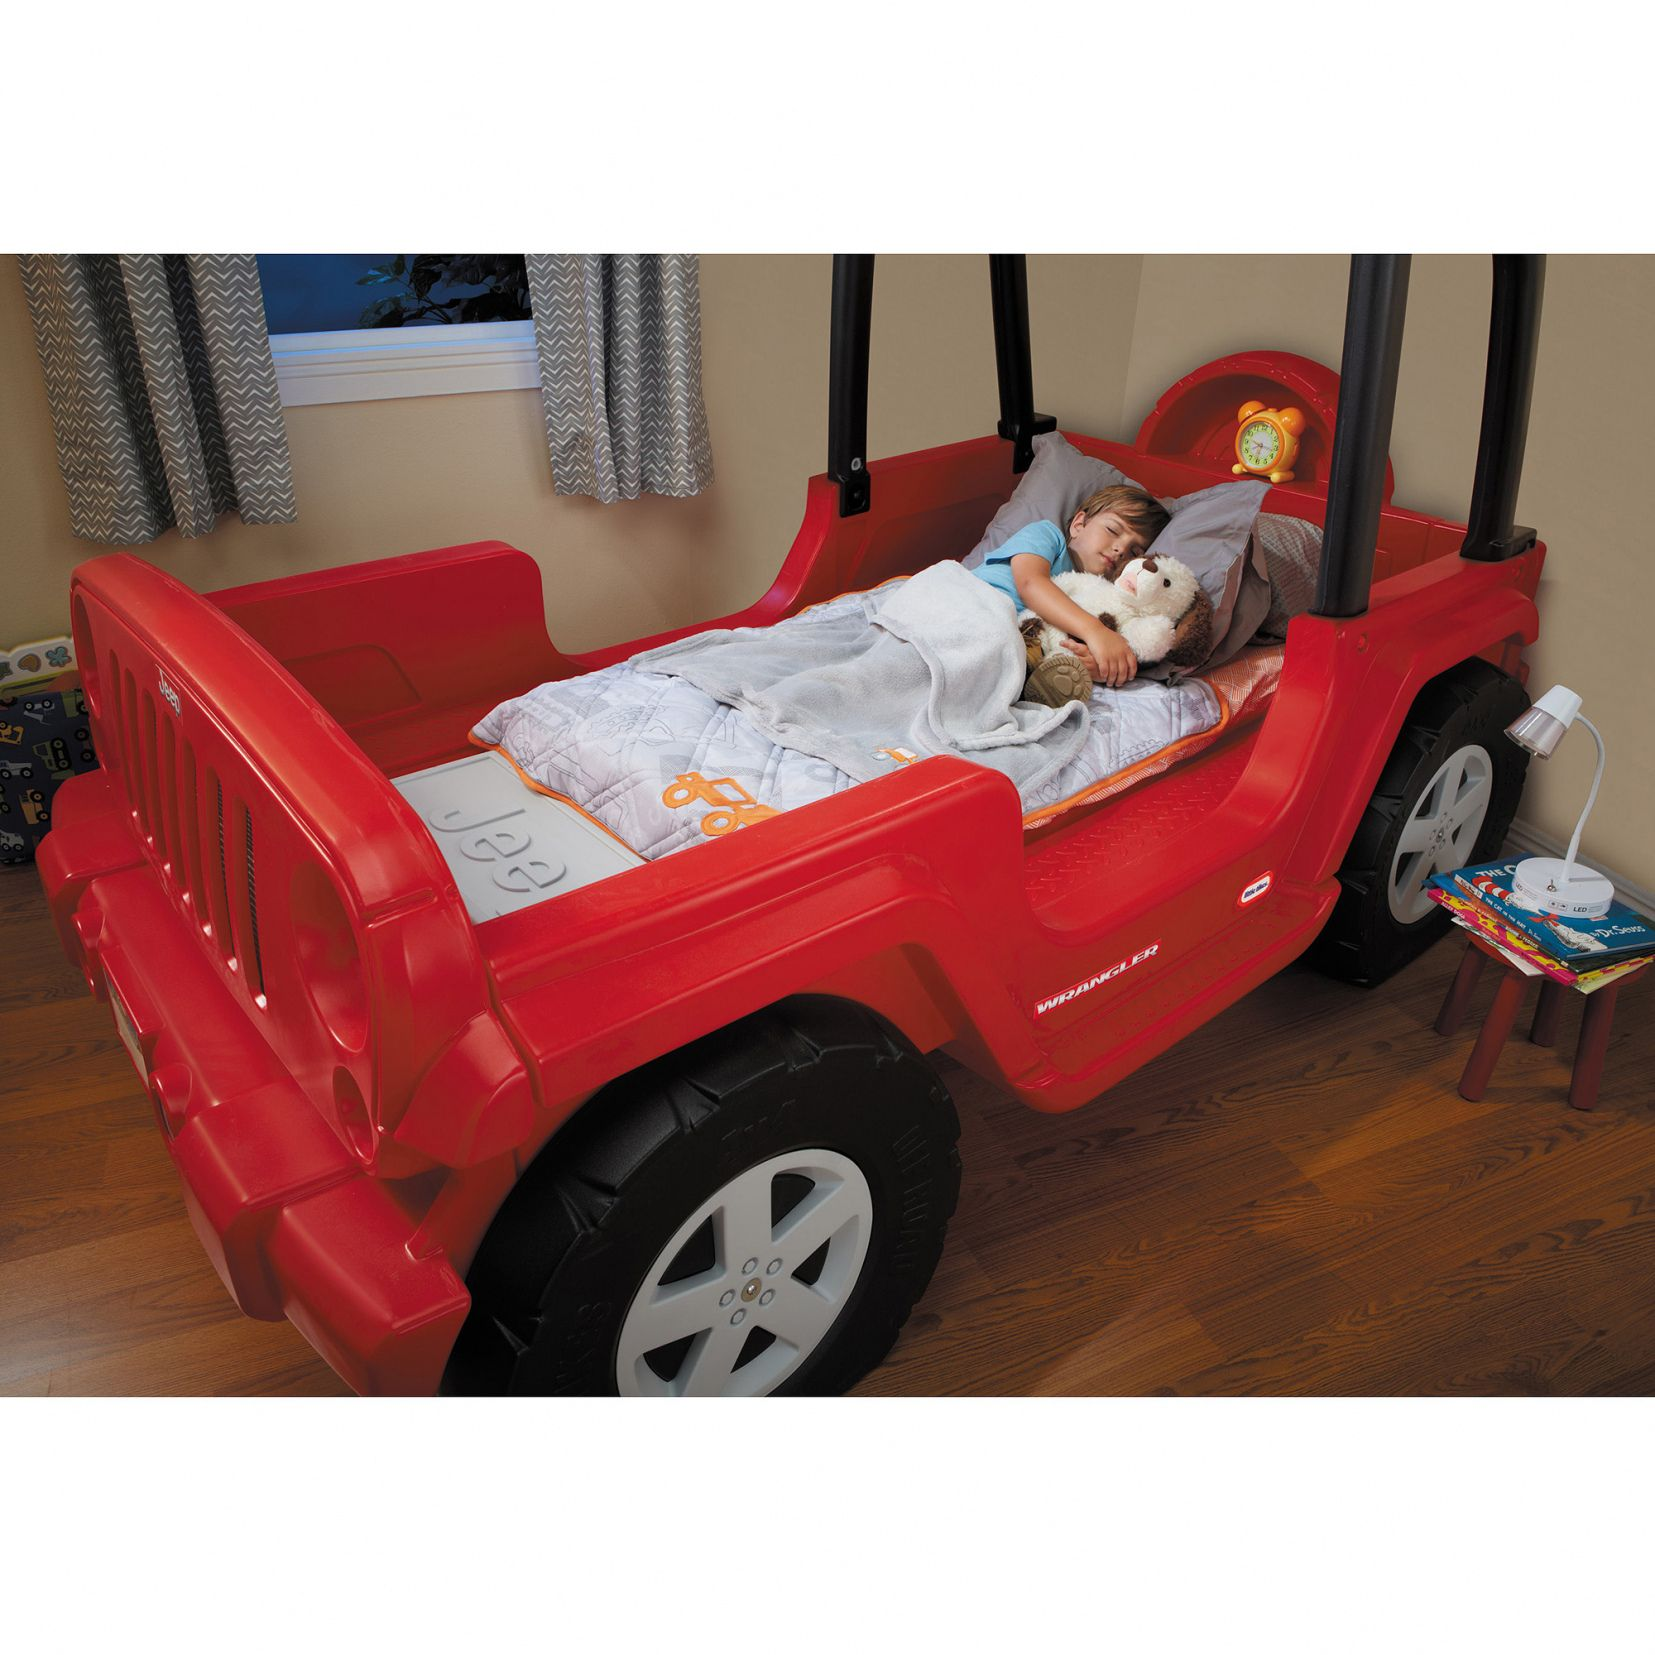 2019 Step 2 Fire Engine Toddler Bed Vanity Ideas For Bedroom